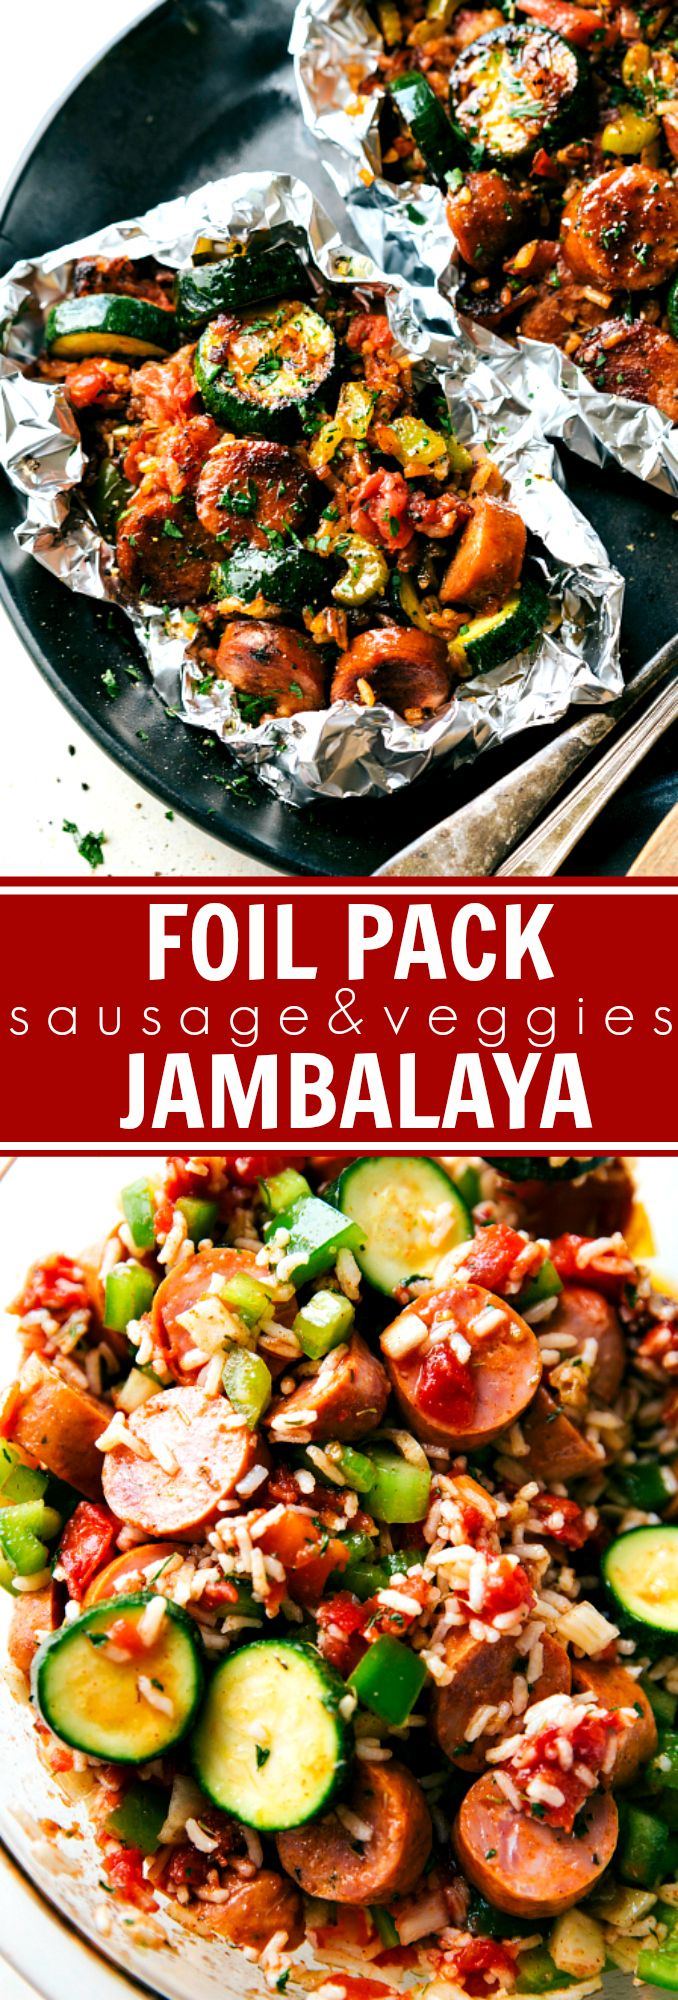 EASY TIN FOIL SAUSAGE VEGGIE DINNER! Andouille sausage, veggies, uncooked rice, and a delicious spice mixture -- throw it all together in some tin foil and forget about it!